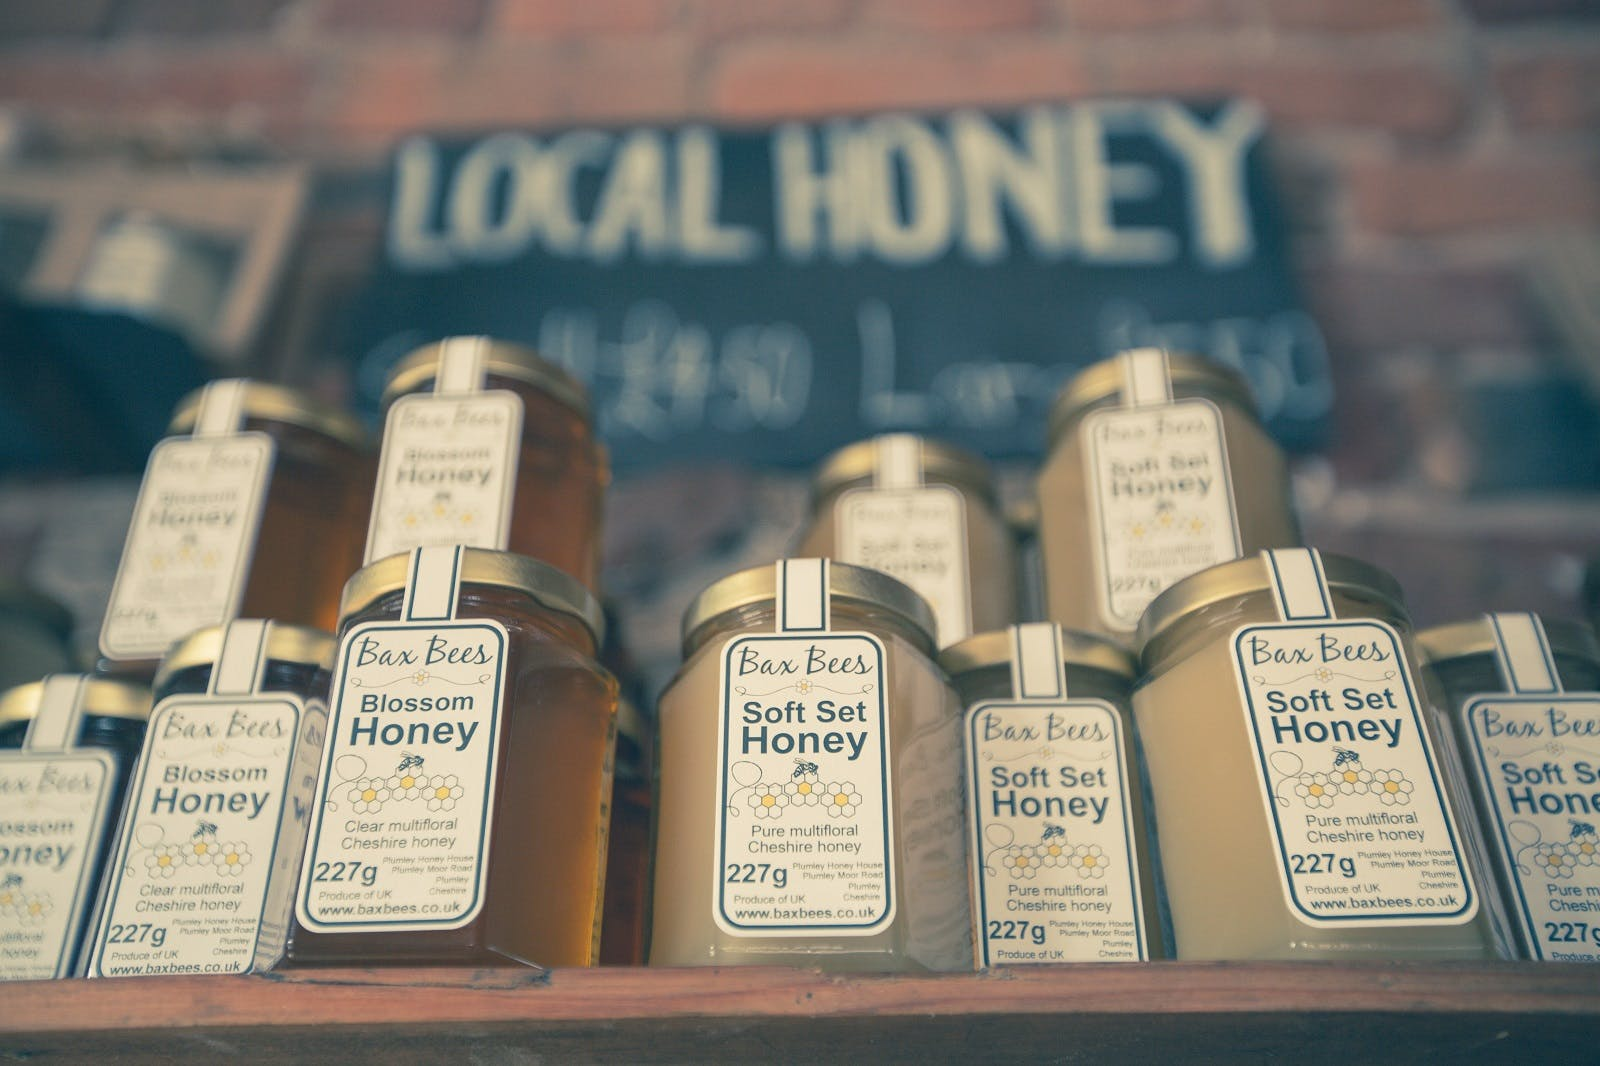 Ten jars of local sea salt and blossom honey on sale. Supporting your local beekeeper is key to saving the bees.